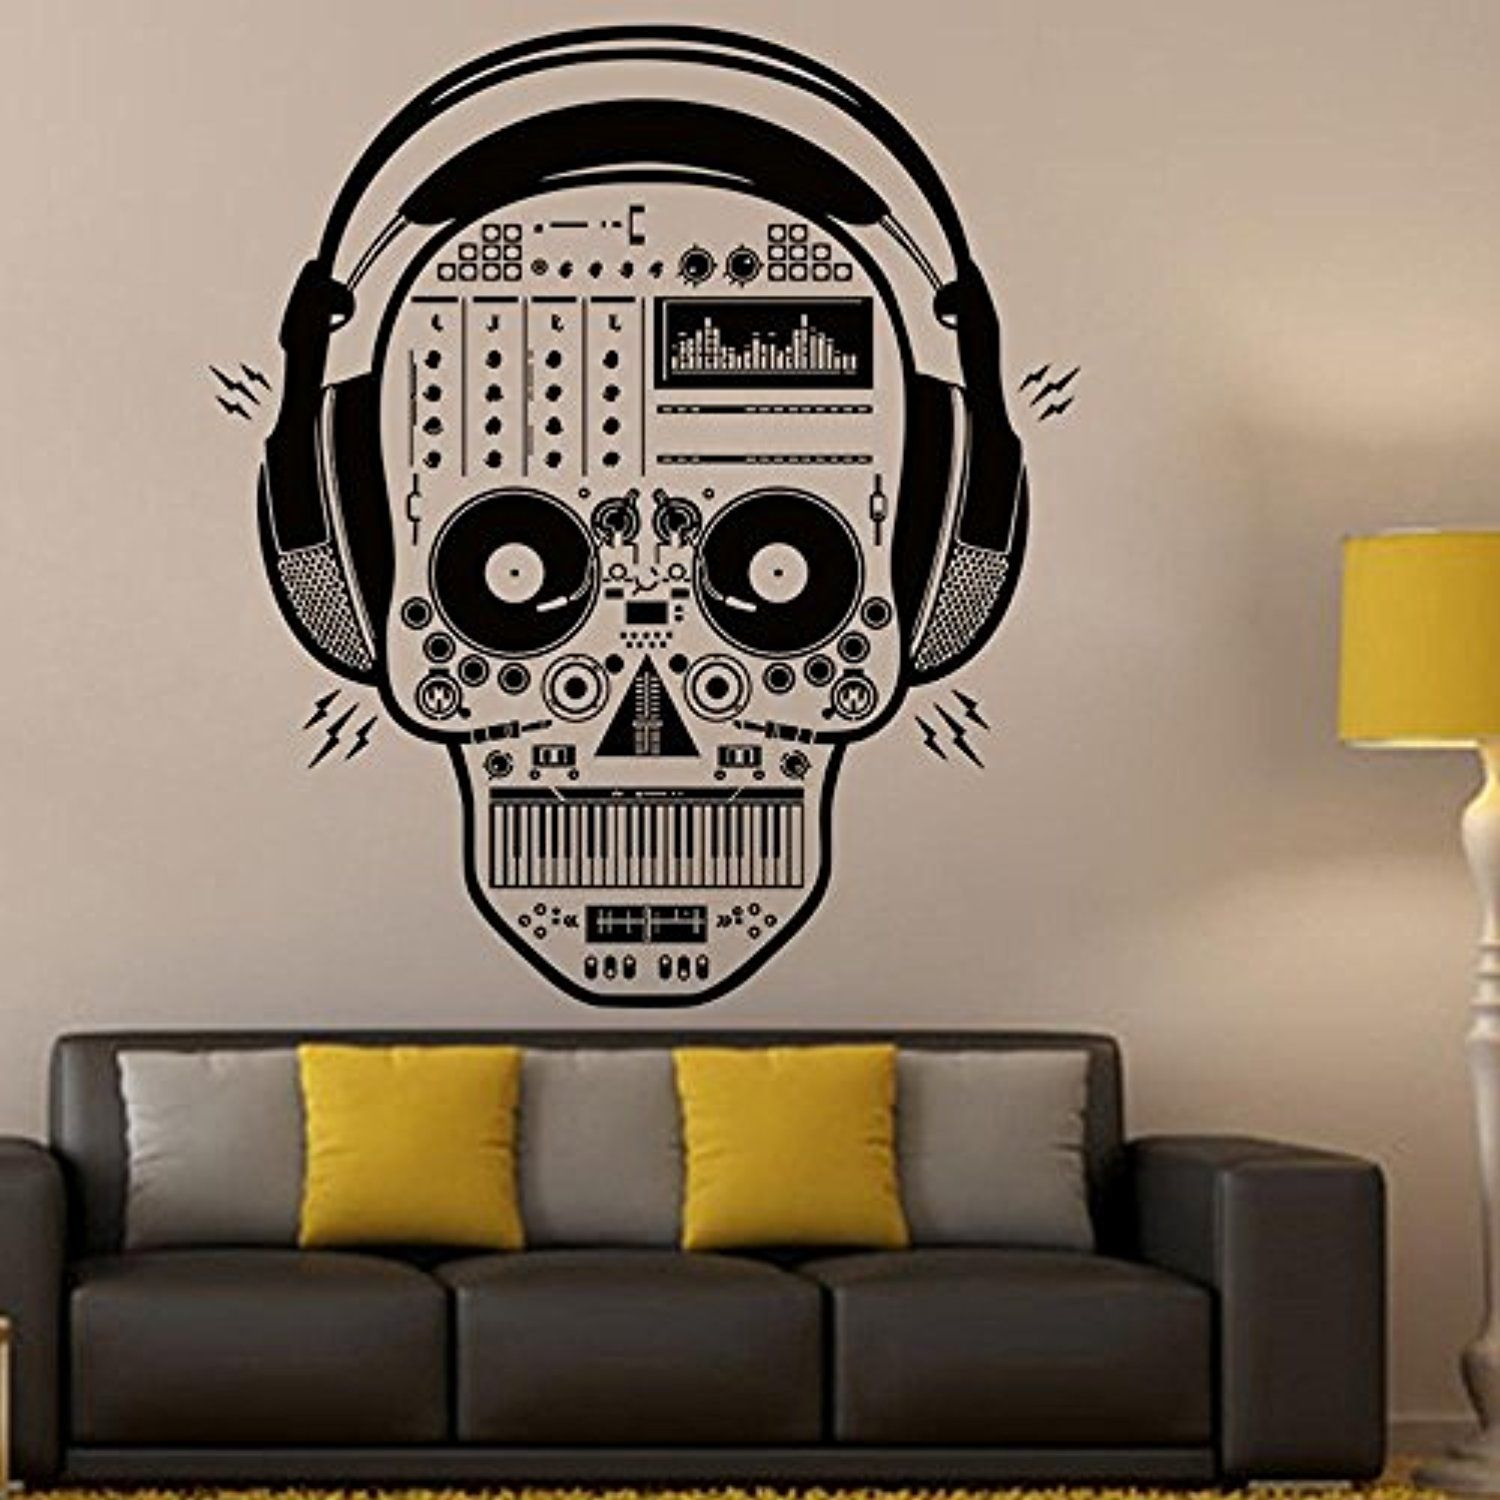 Wall Sticker Hatop Halloween Skeleton Background Decorated Living Room Bedroom Wall Stickers D Ch Wall Stickers Bedroom Halloween Skeletons Skull Sticker [ 1500 x 1500 Pixel ]